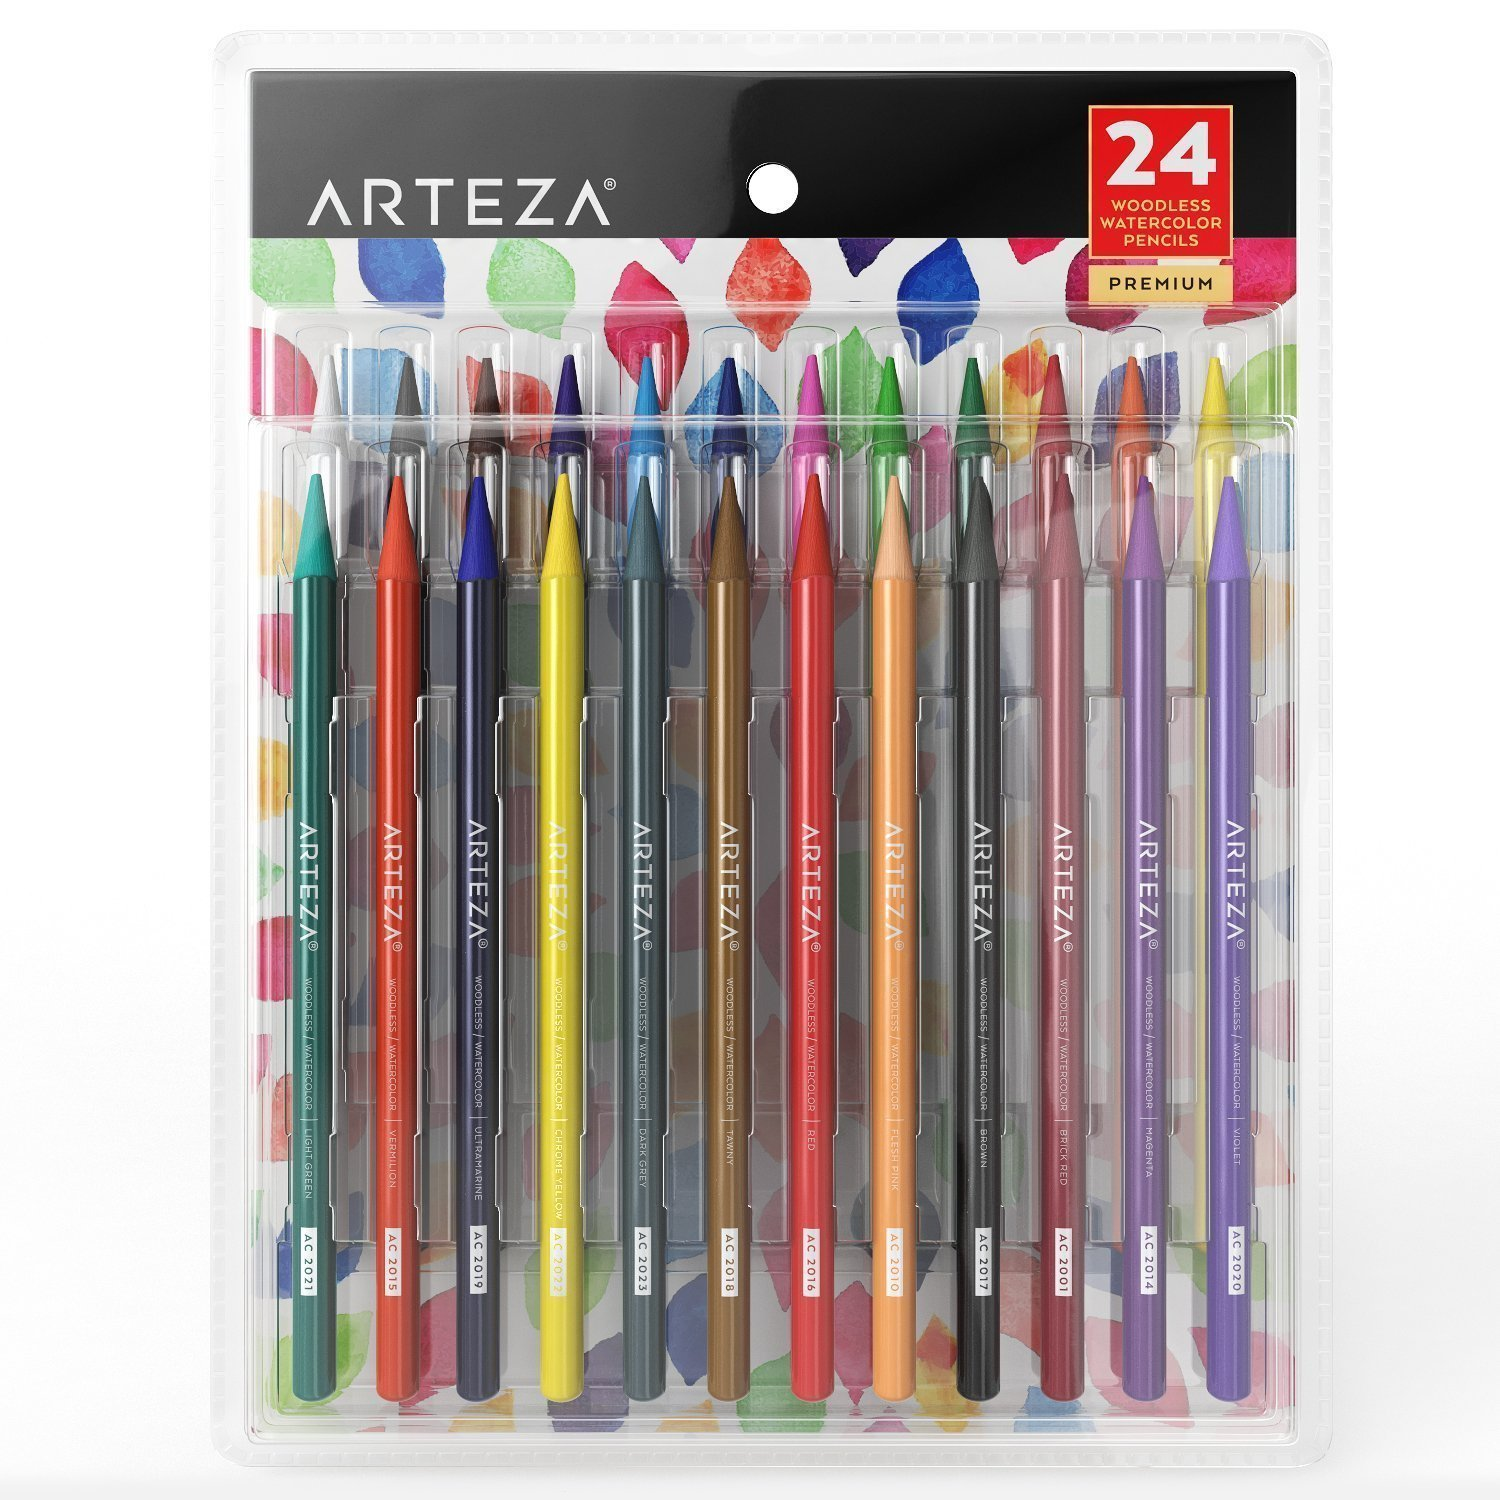 Woodless Watercolor Pencils Set Of 24 Pencil Drawings Pencil